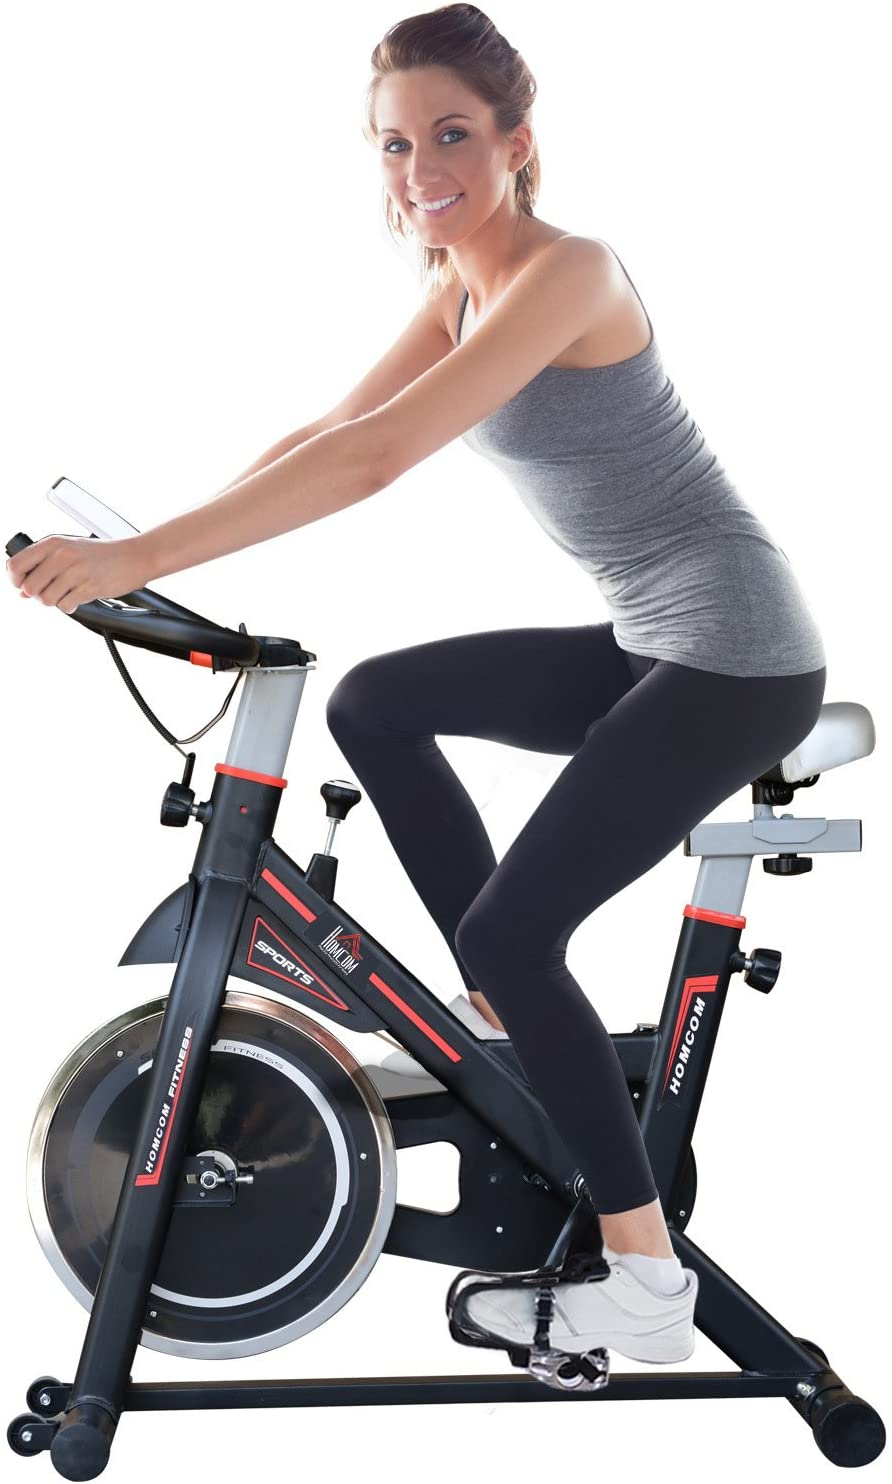 HOMCOM 8kg Flywheel Exercise Bike